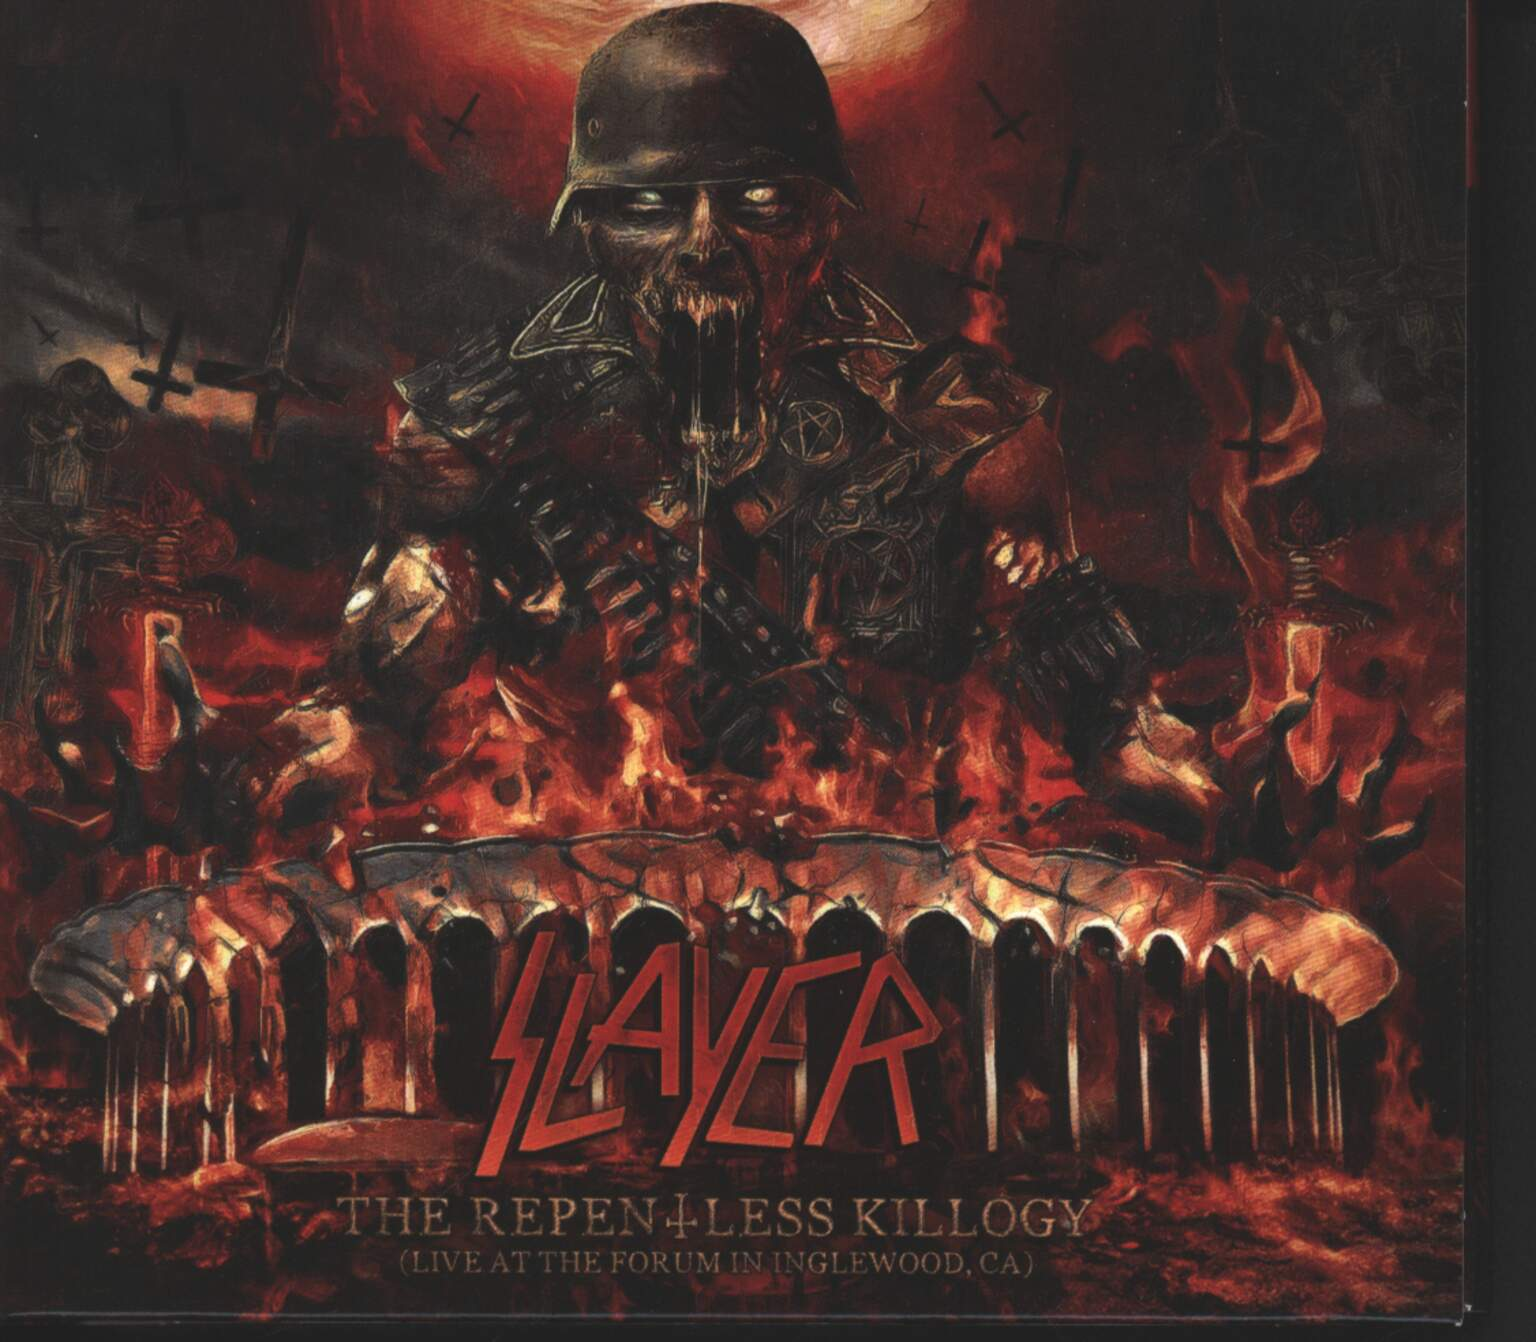 Slayer: The Repentless Killogy (Live At The Forum In Inglewood, CA), 2×CD